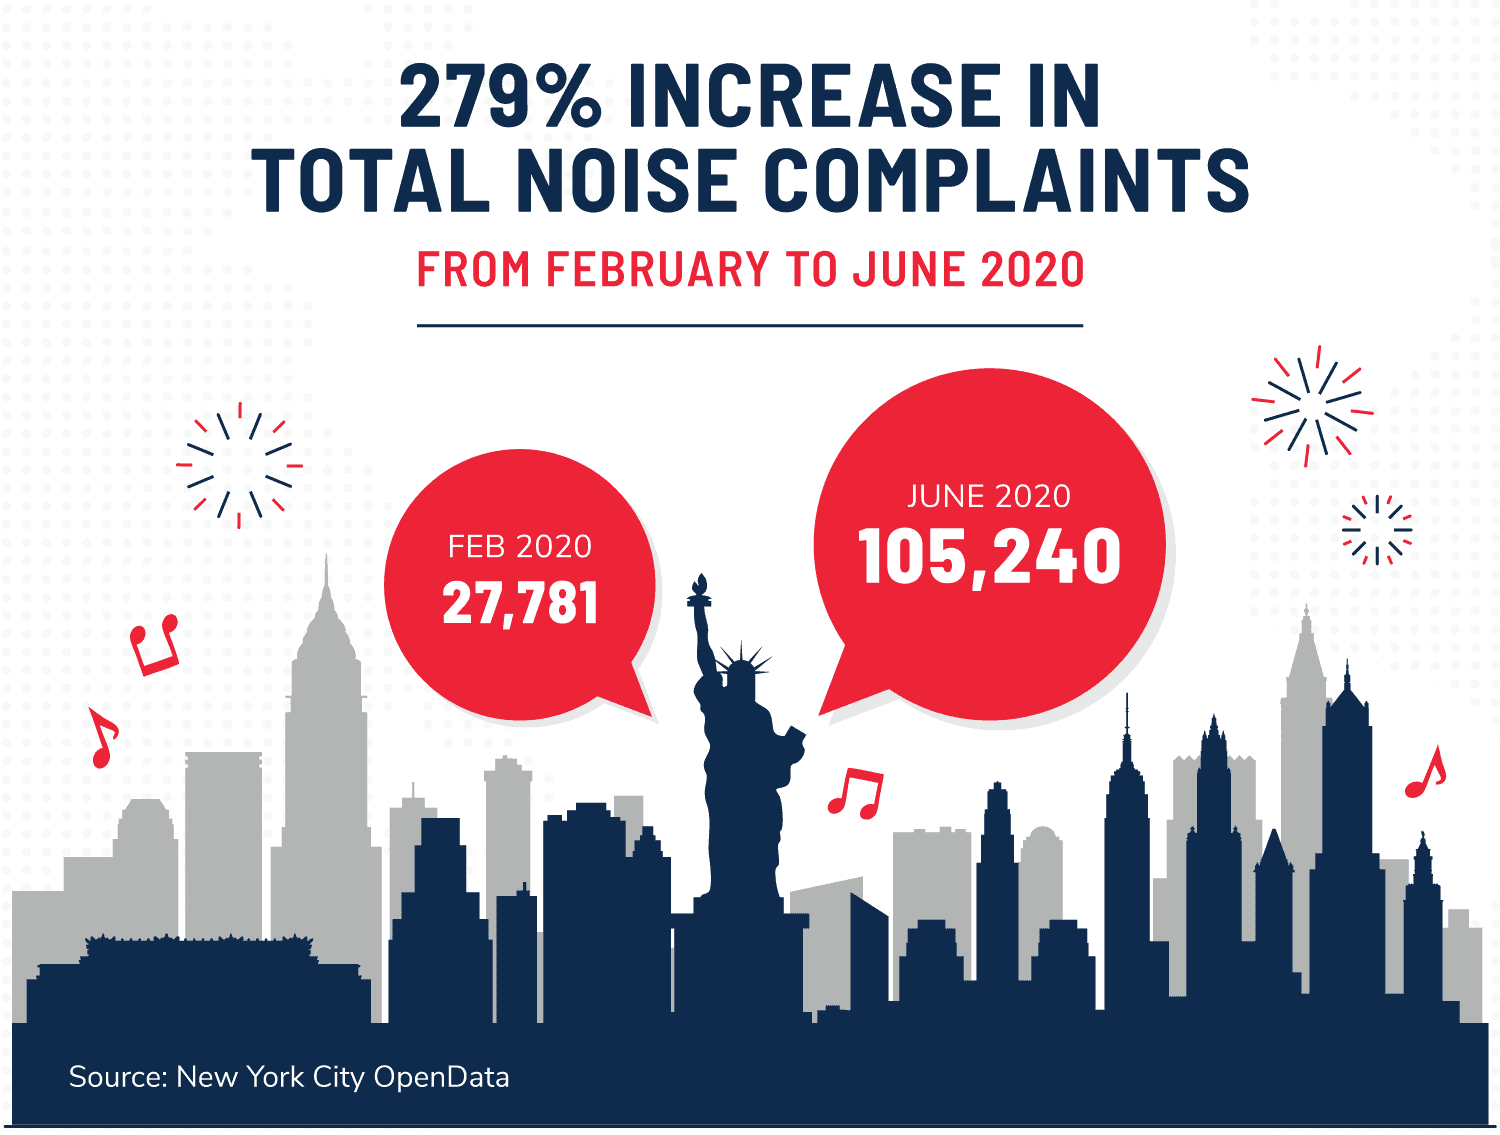 an illustration showing a 279% increase in total noise complaints in New York City from February to June 2020